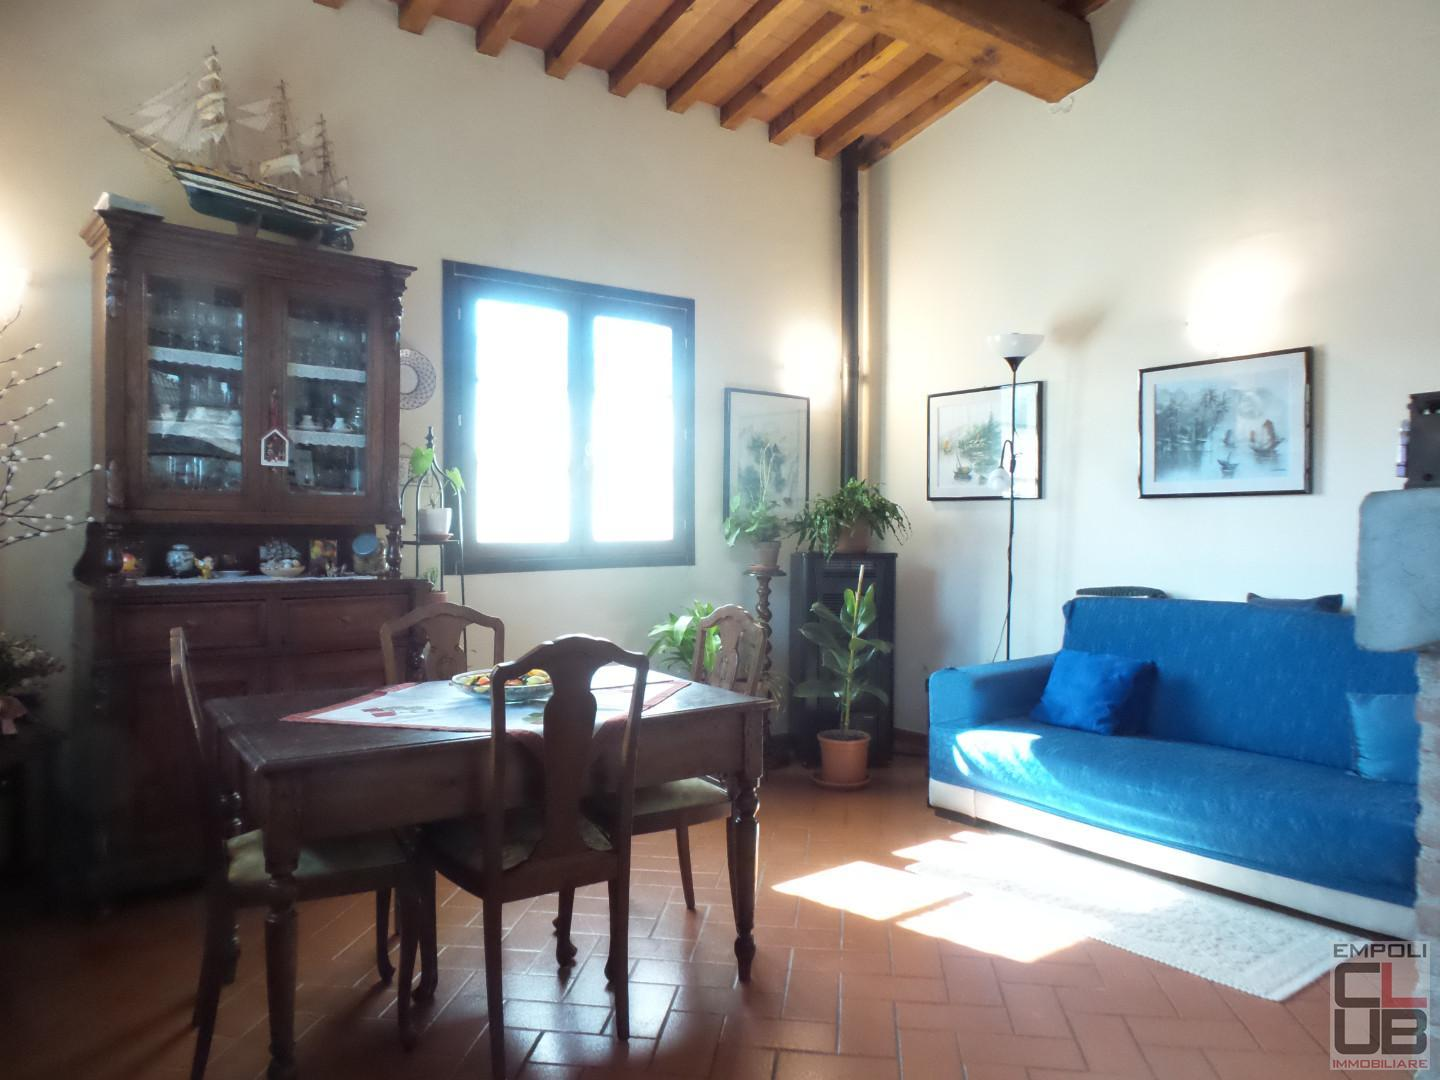 Apartment for sale in Montelupo Fiorentino (FI)